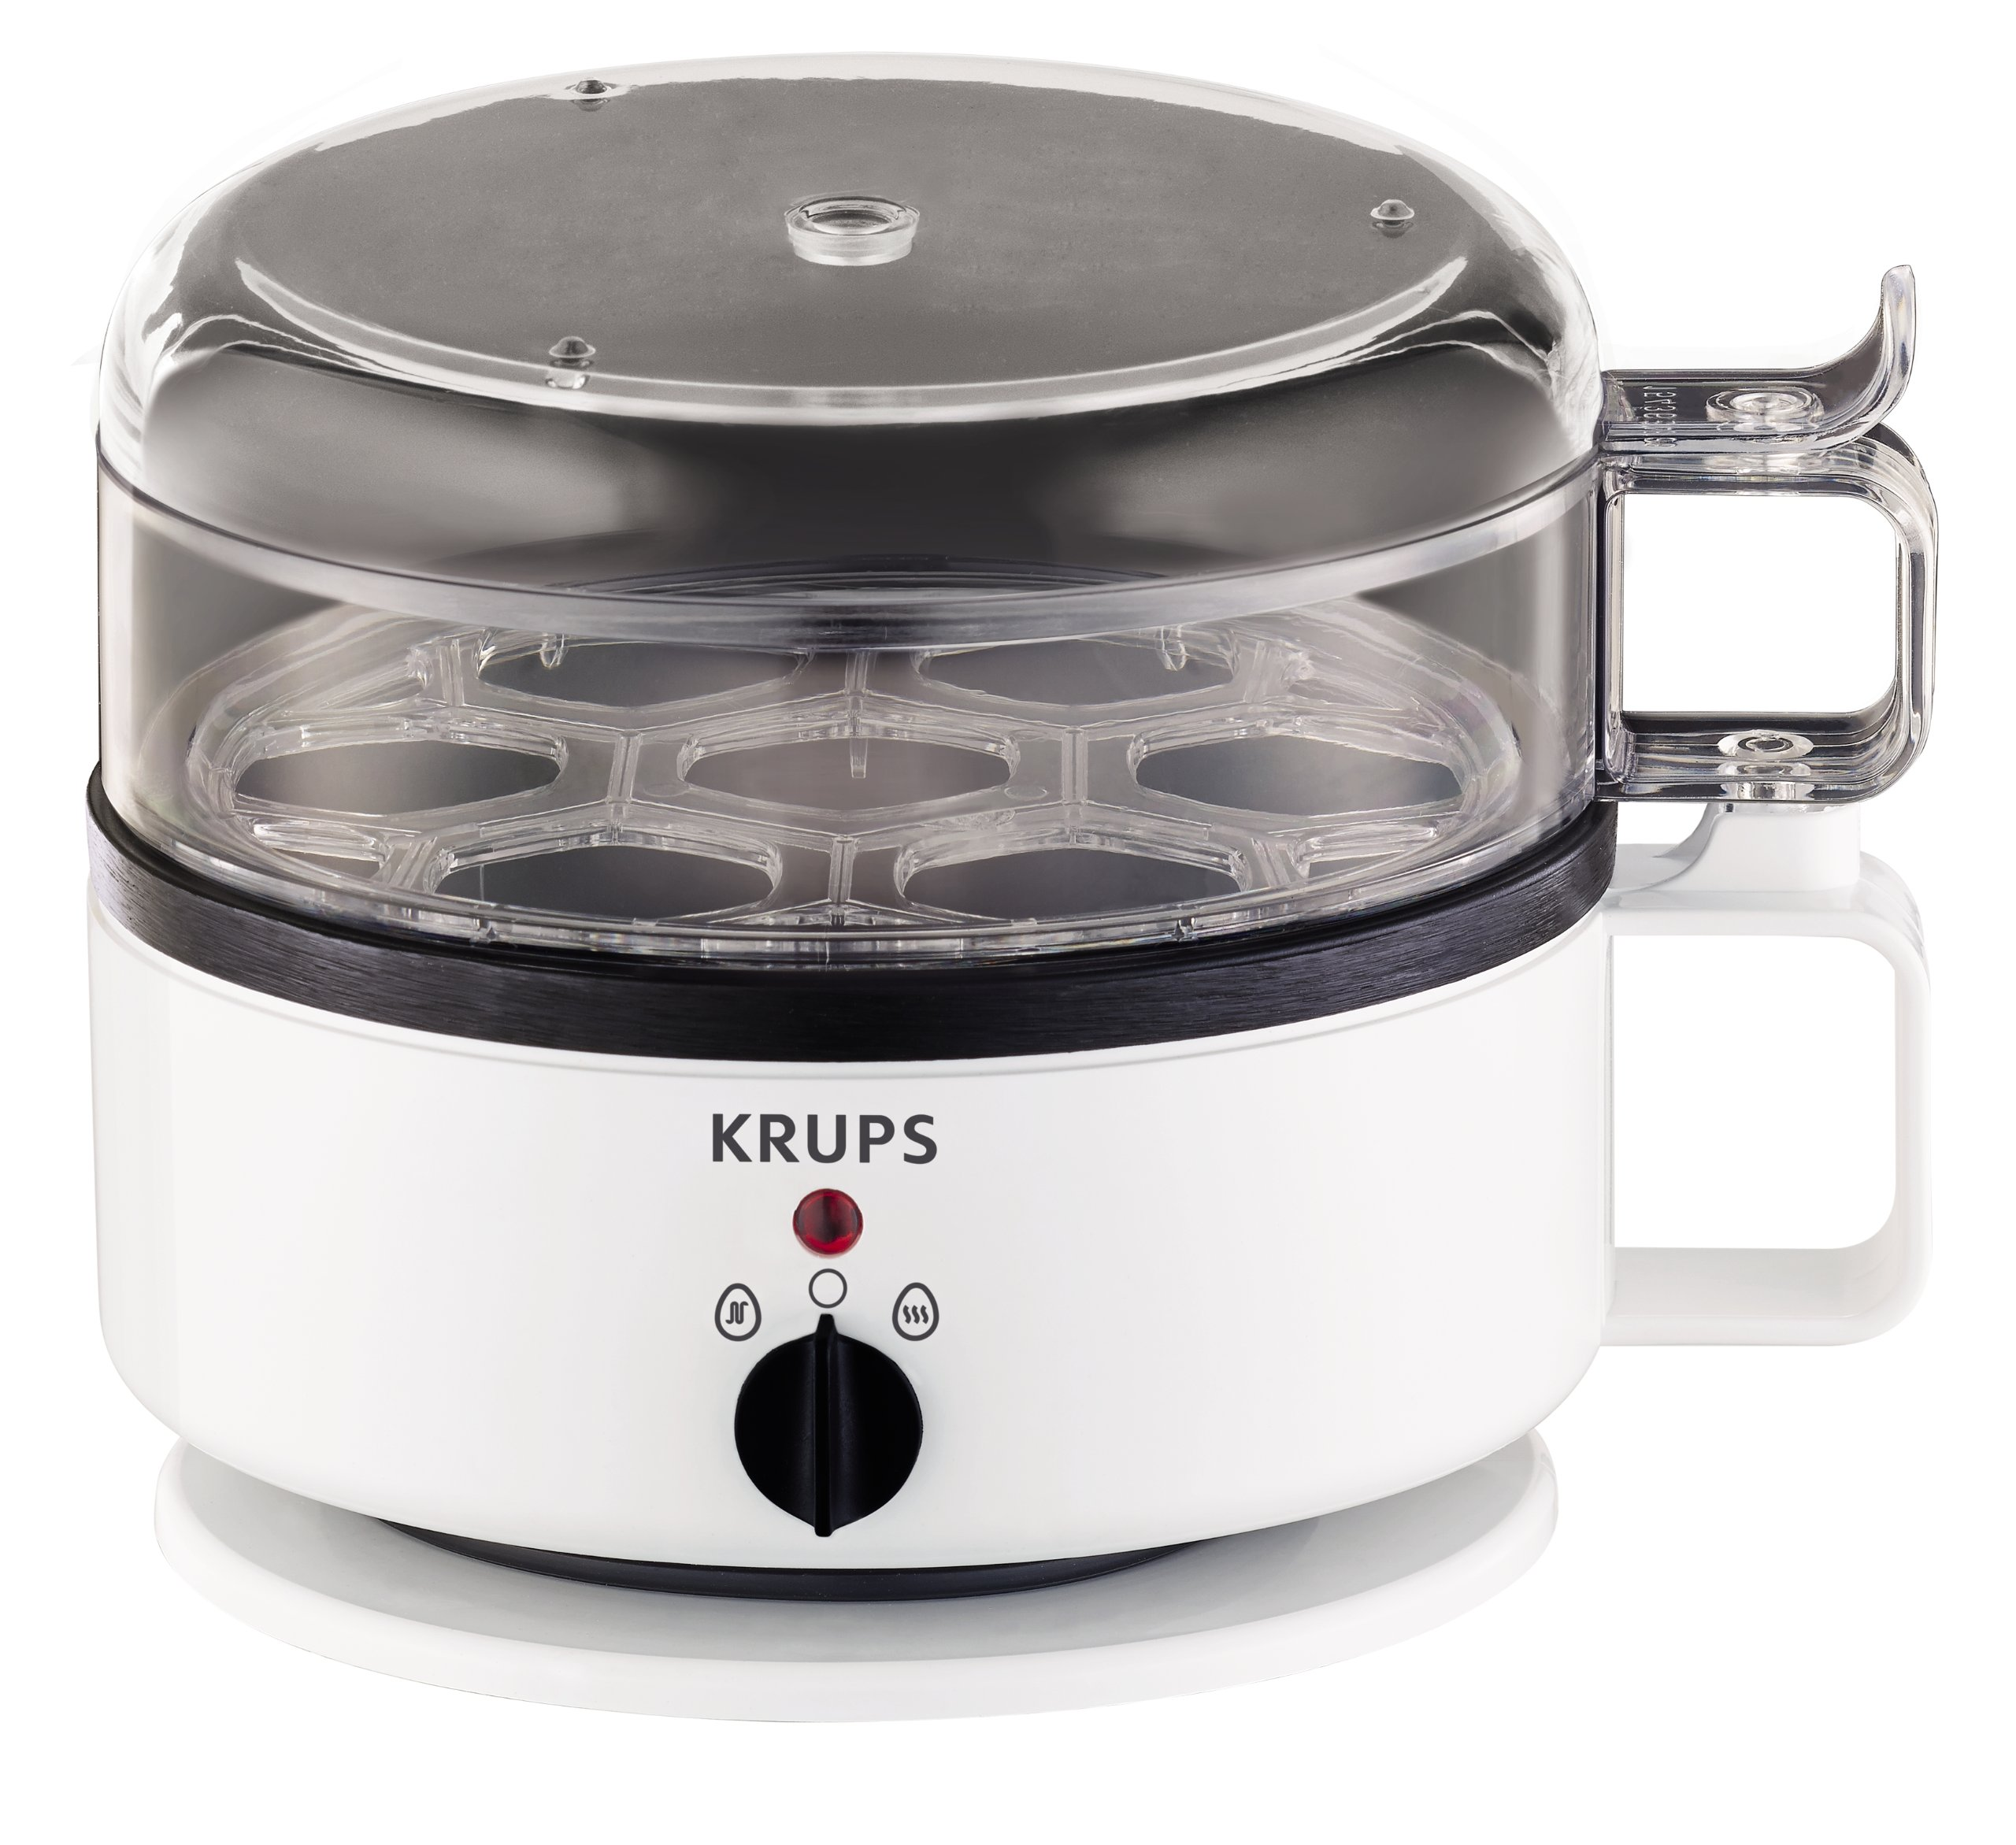 KRUPS F23070 Egg Cooker with Water Level Indicator, 7-Eggs capacity, White by KRUPS